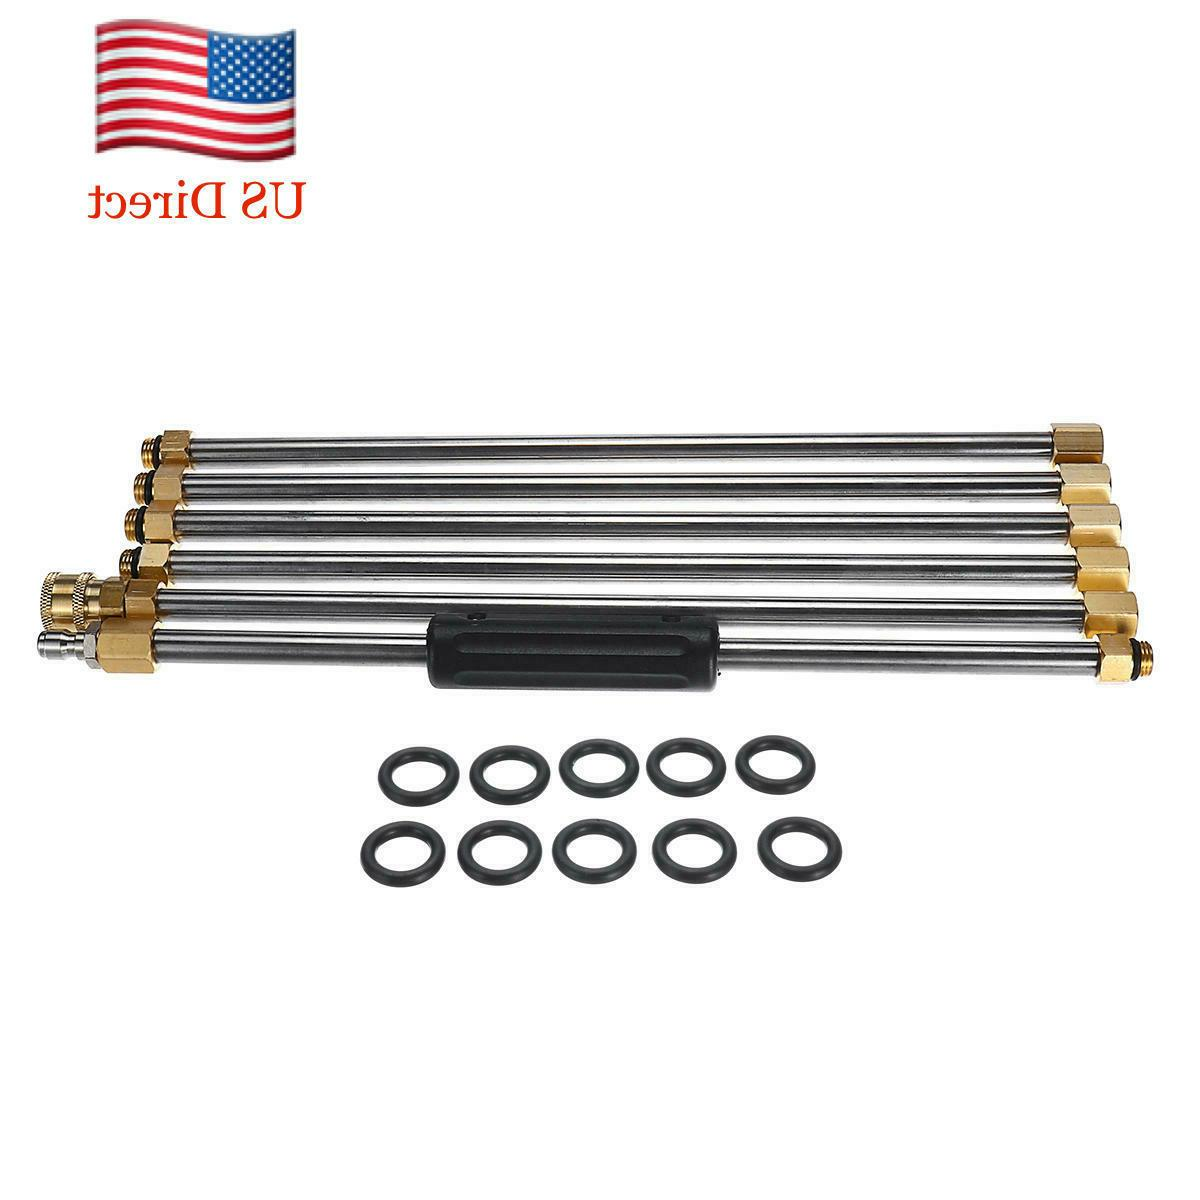 1 4 inch high pressure washer extension